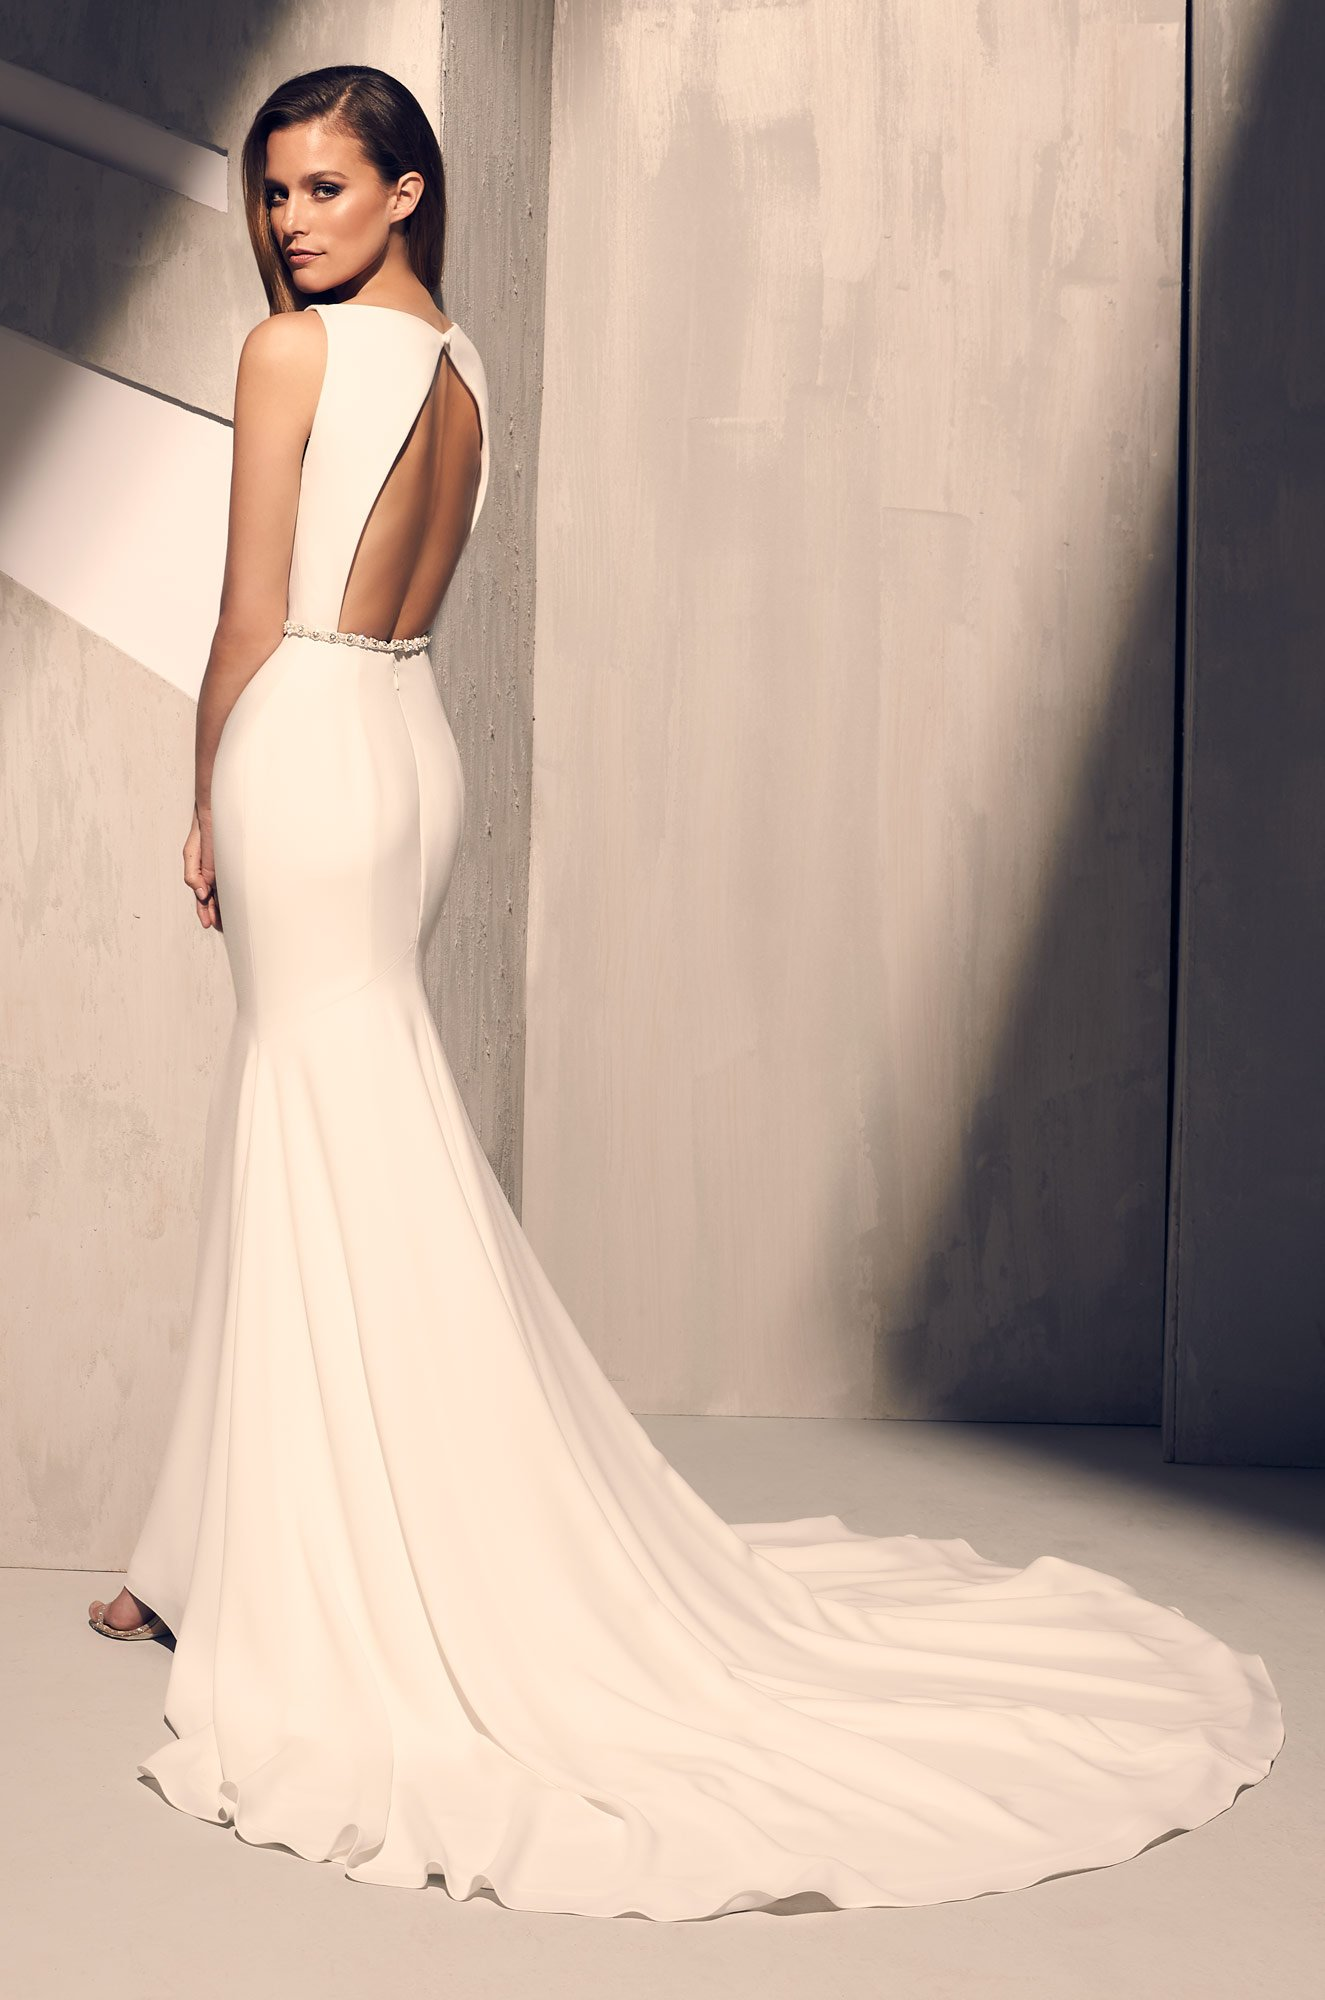 Elegant Flared Wedding Dress – Style #2200 | Mikaella Bridal